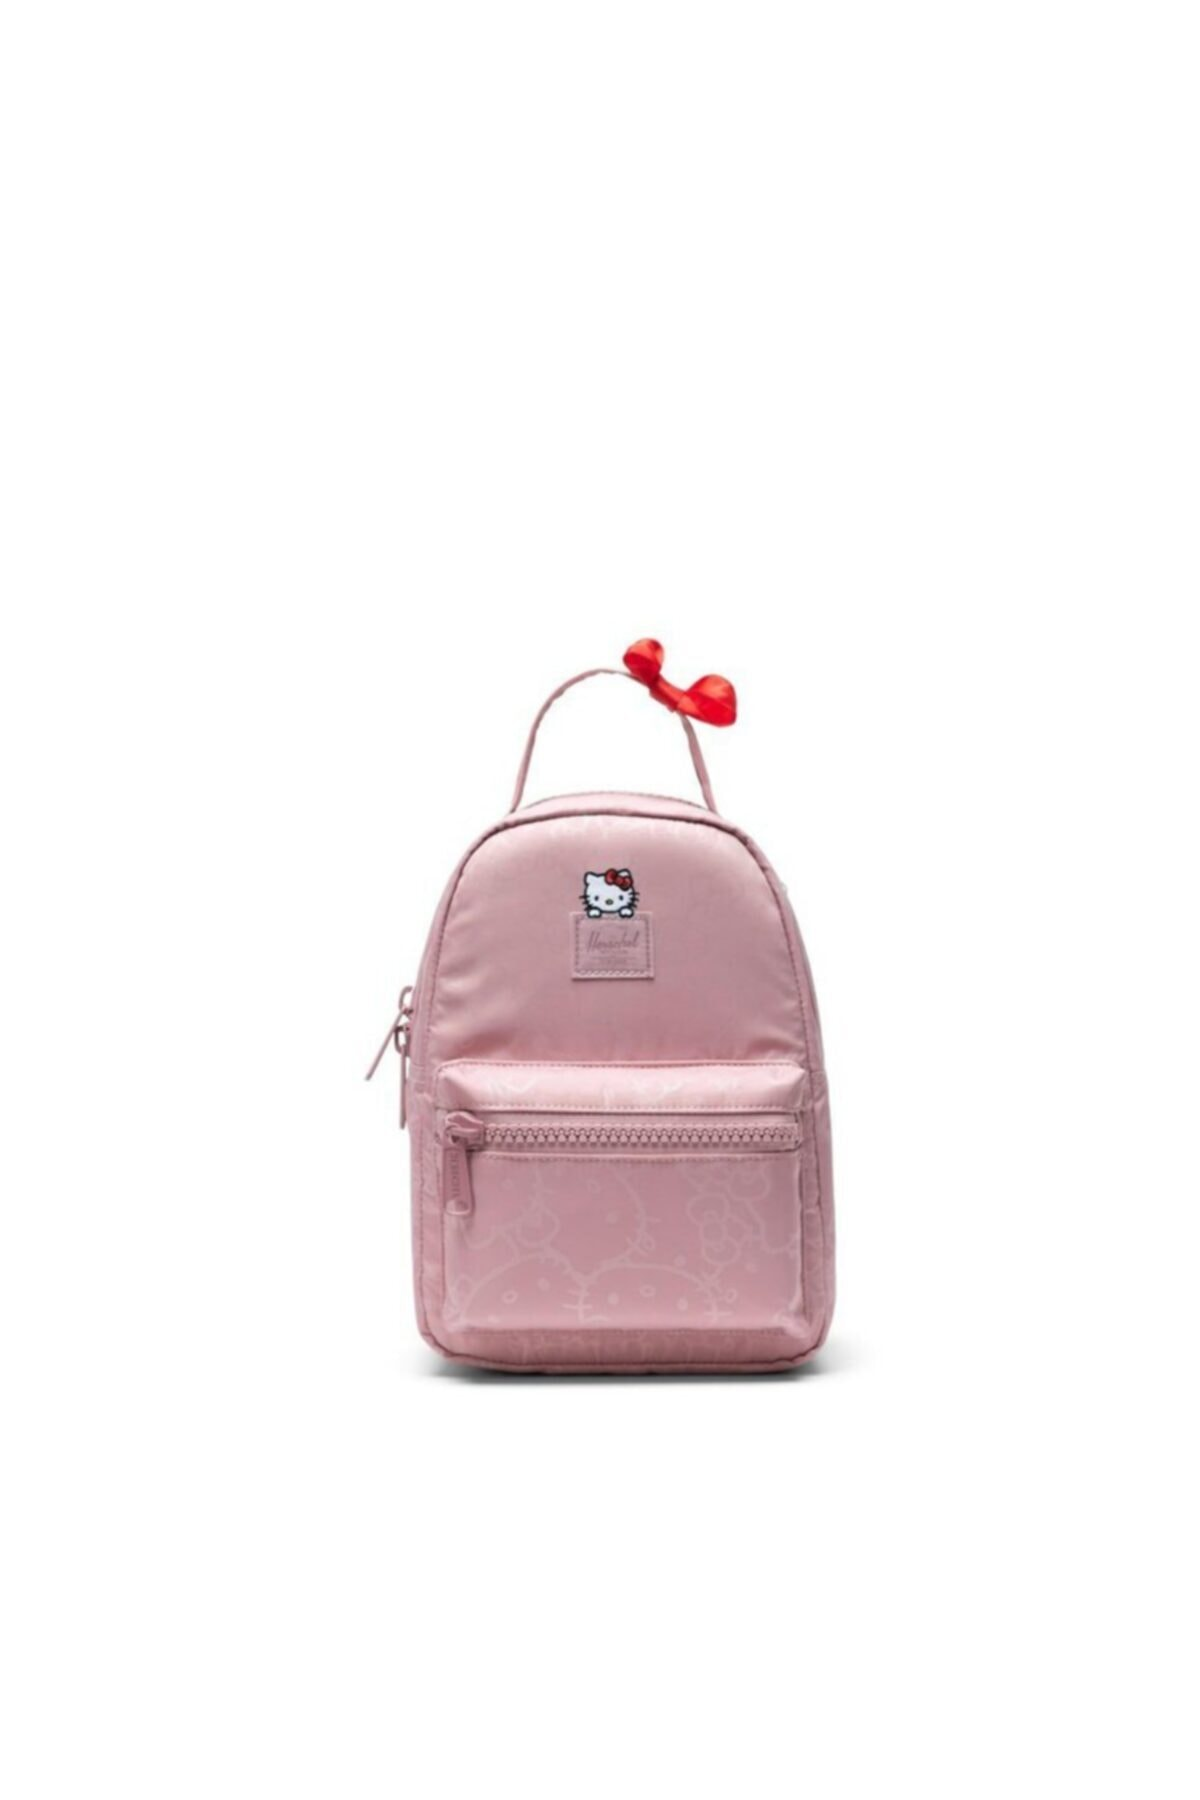 Herschel Supply Co. Herschel Nova Mini Sırt Çantası 10501-03065-os 1